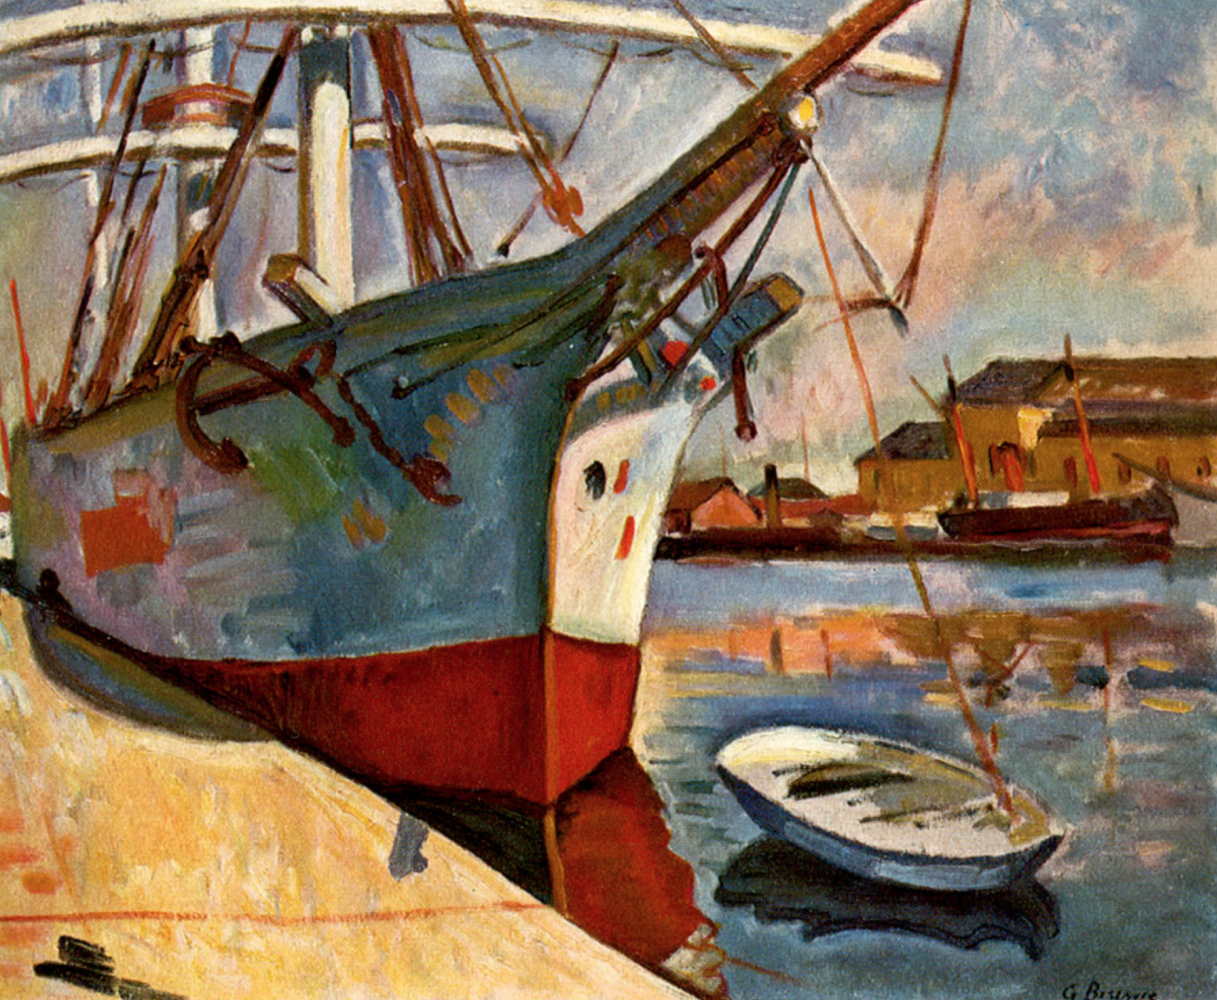 Georges Braque. The ship in Le Havre